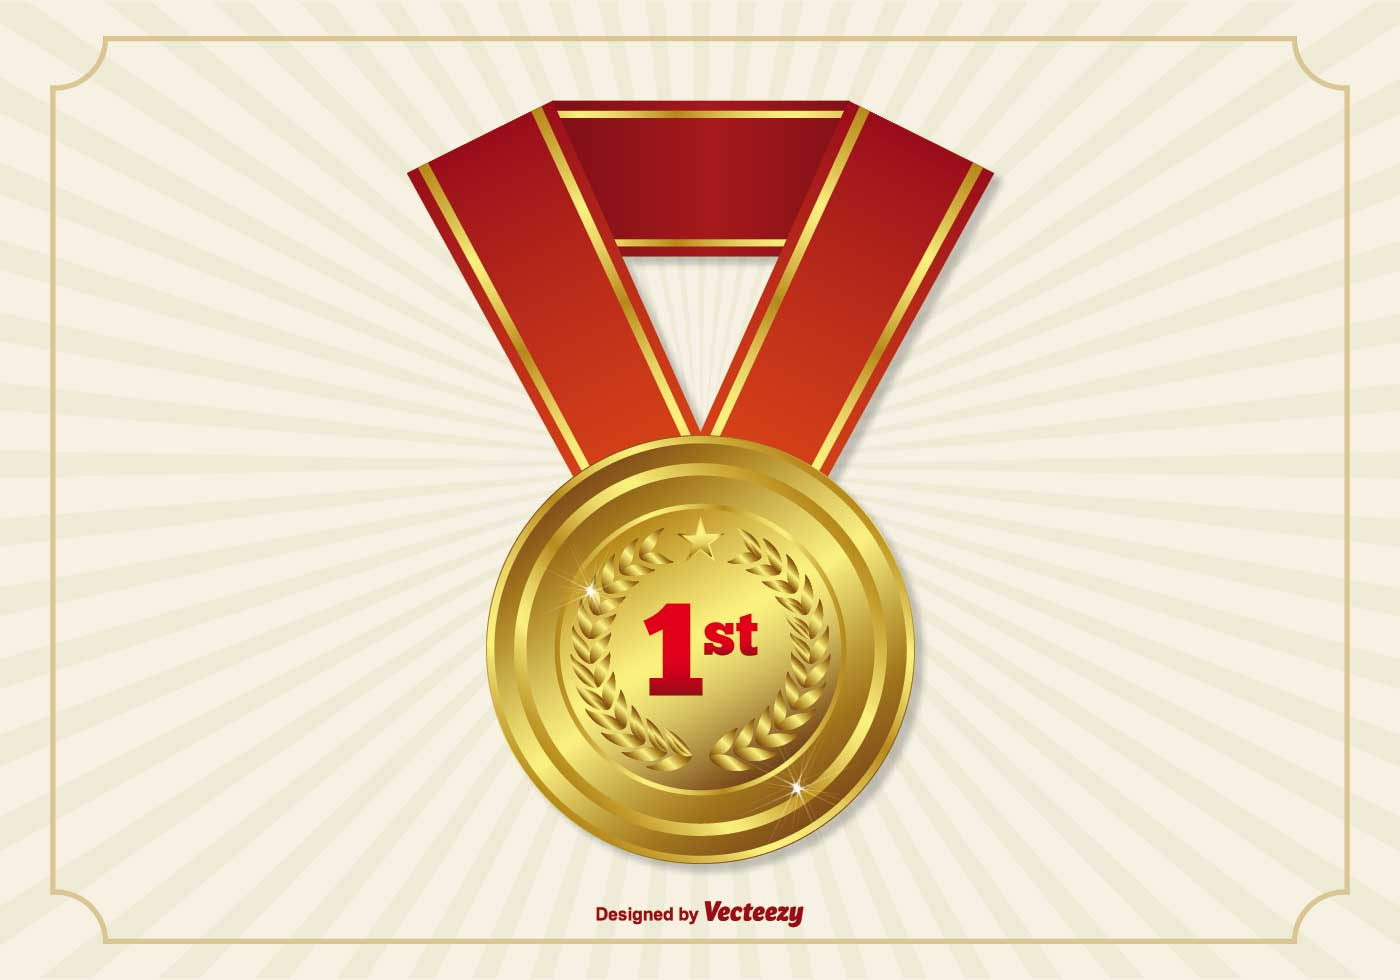 Medal vector clipart vector free library Medal Free Vector Art - (15,547 Free Downloads) vector free library